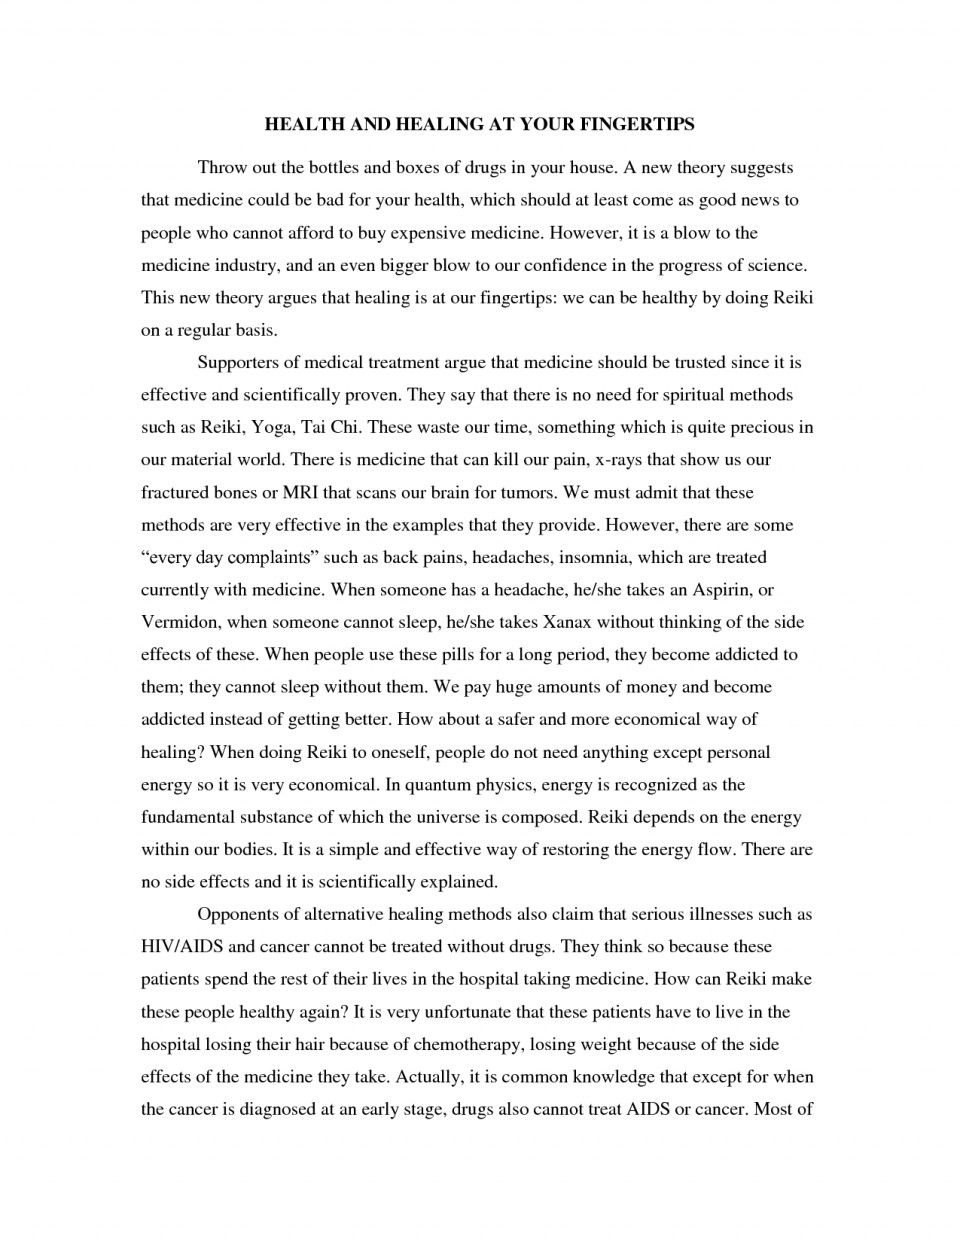 016 Mentor Argument Essay Page How To Write Good Argumentatives Astounding Argumentative Examples For High School Tagalog Topics Middle Students Format 960